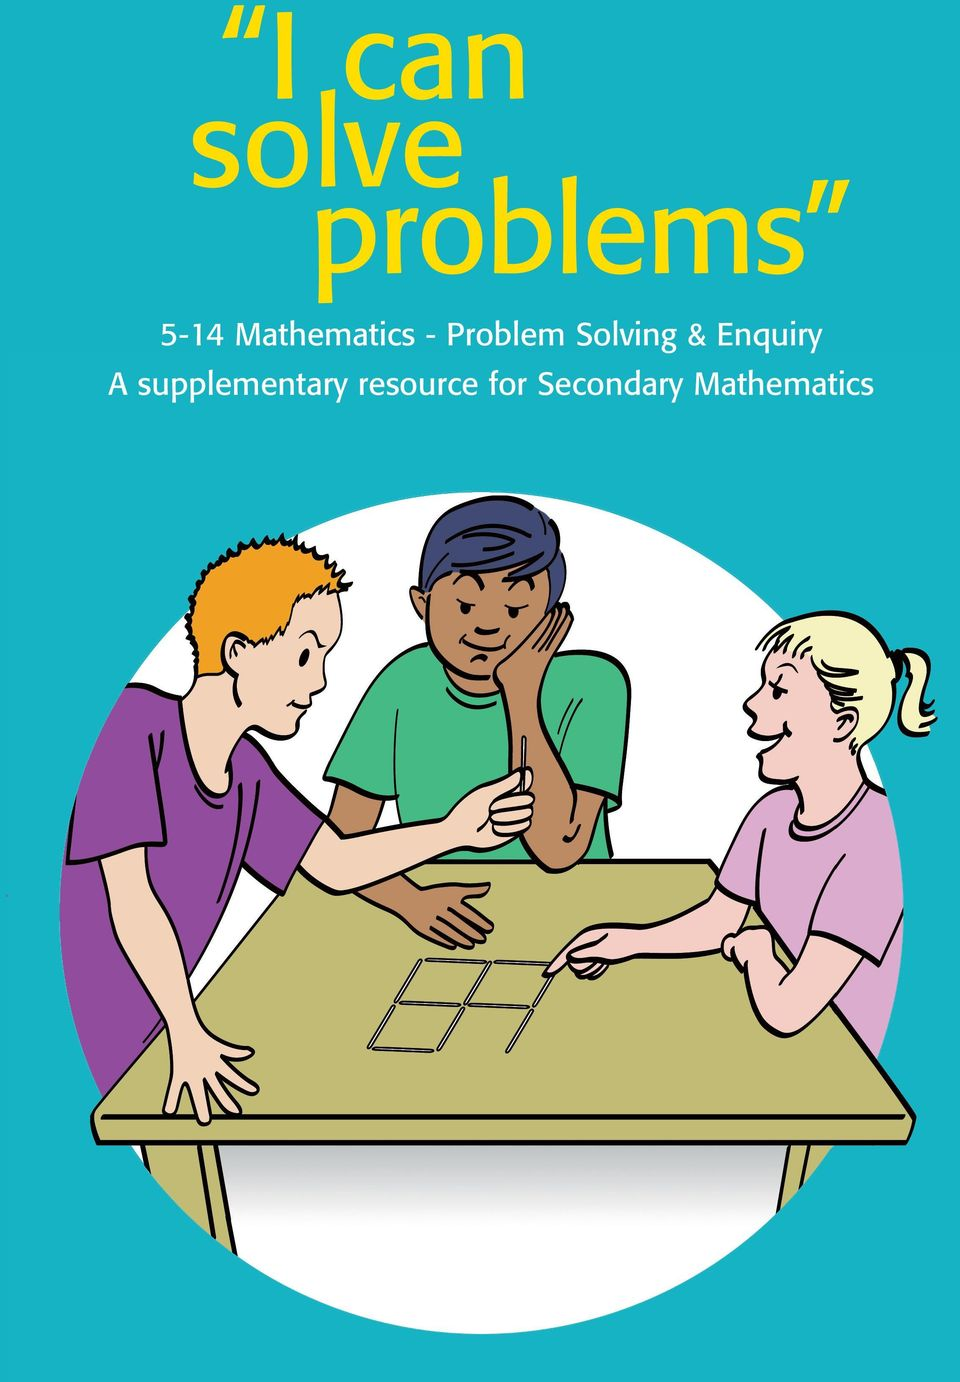 Problem Solving & Enquiry A